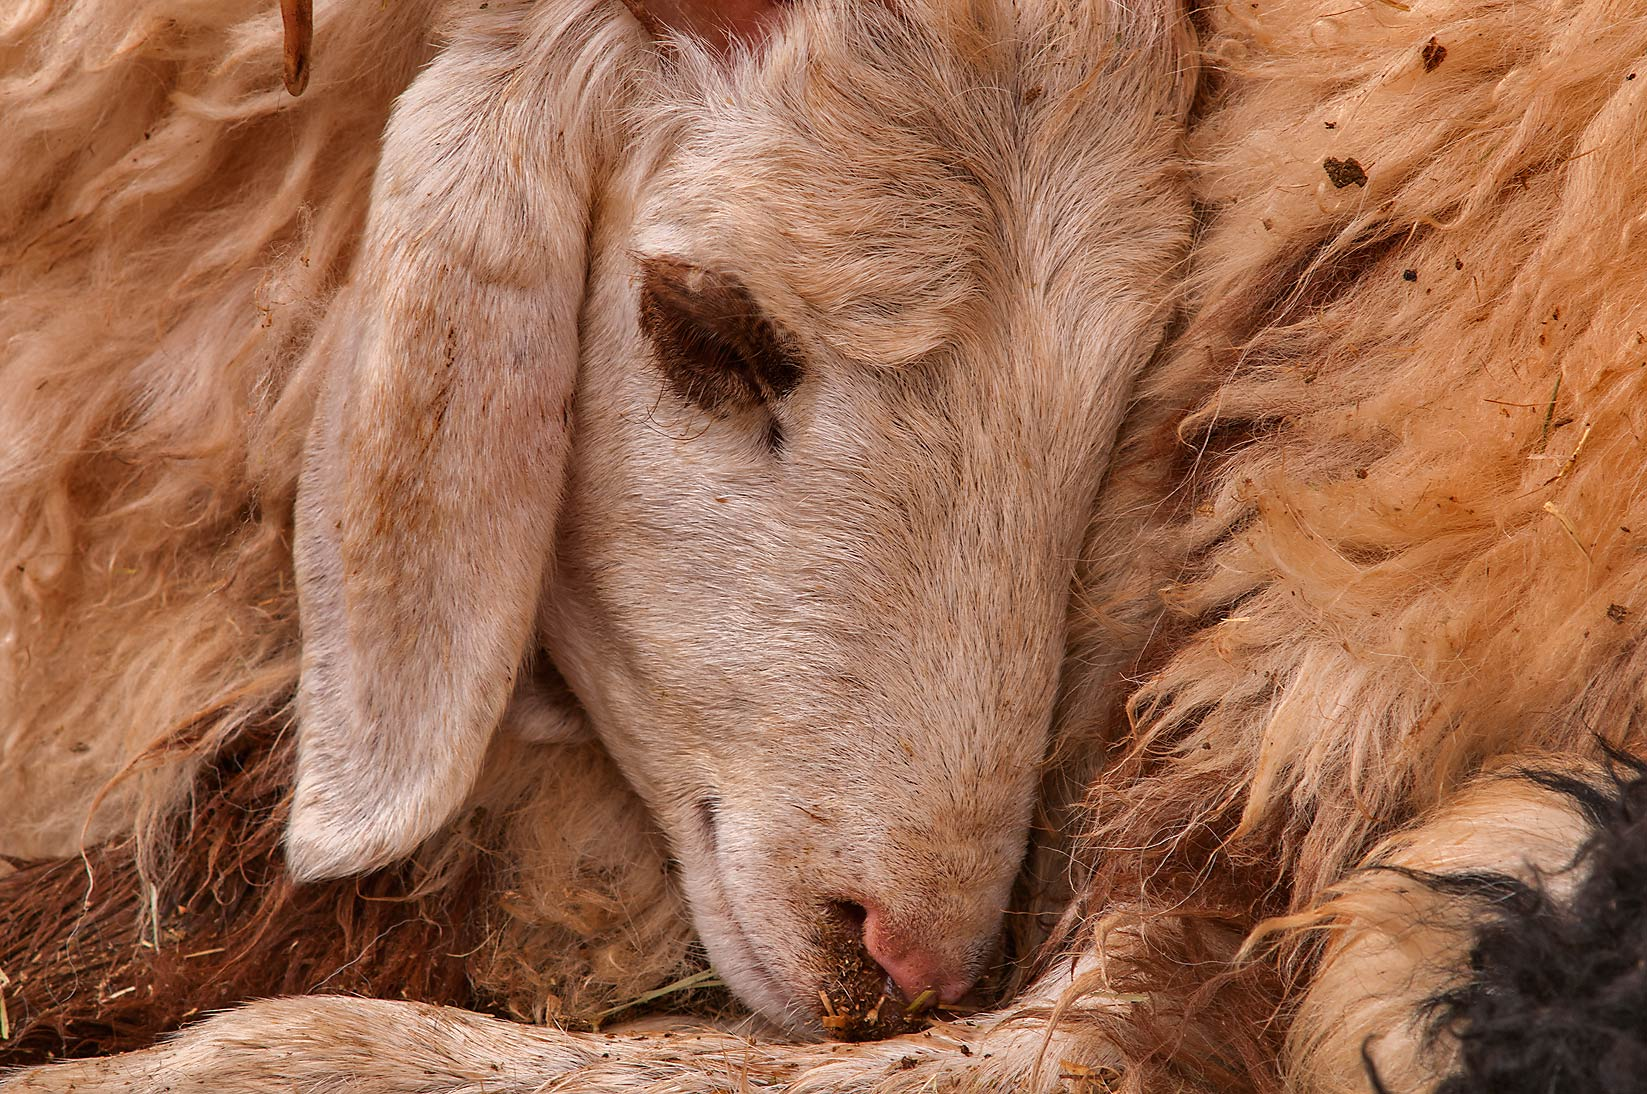 Sleeping sheep in livestock markets, Abu Hamour area. Doha, Qatar